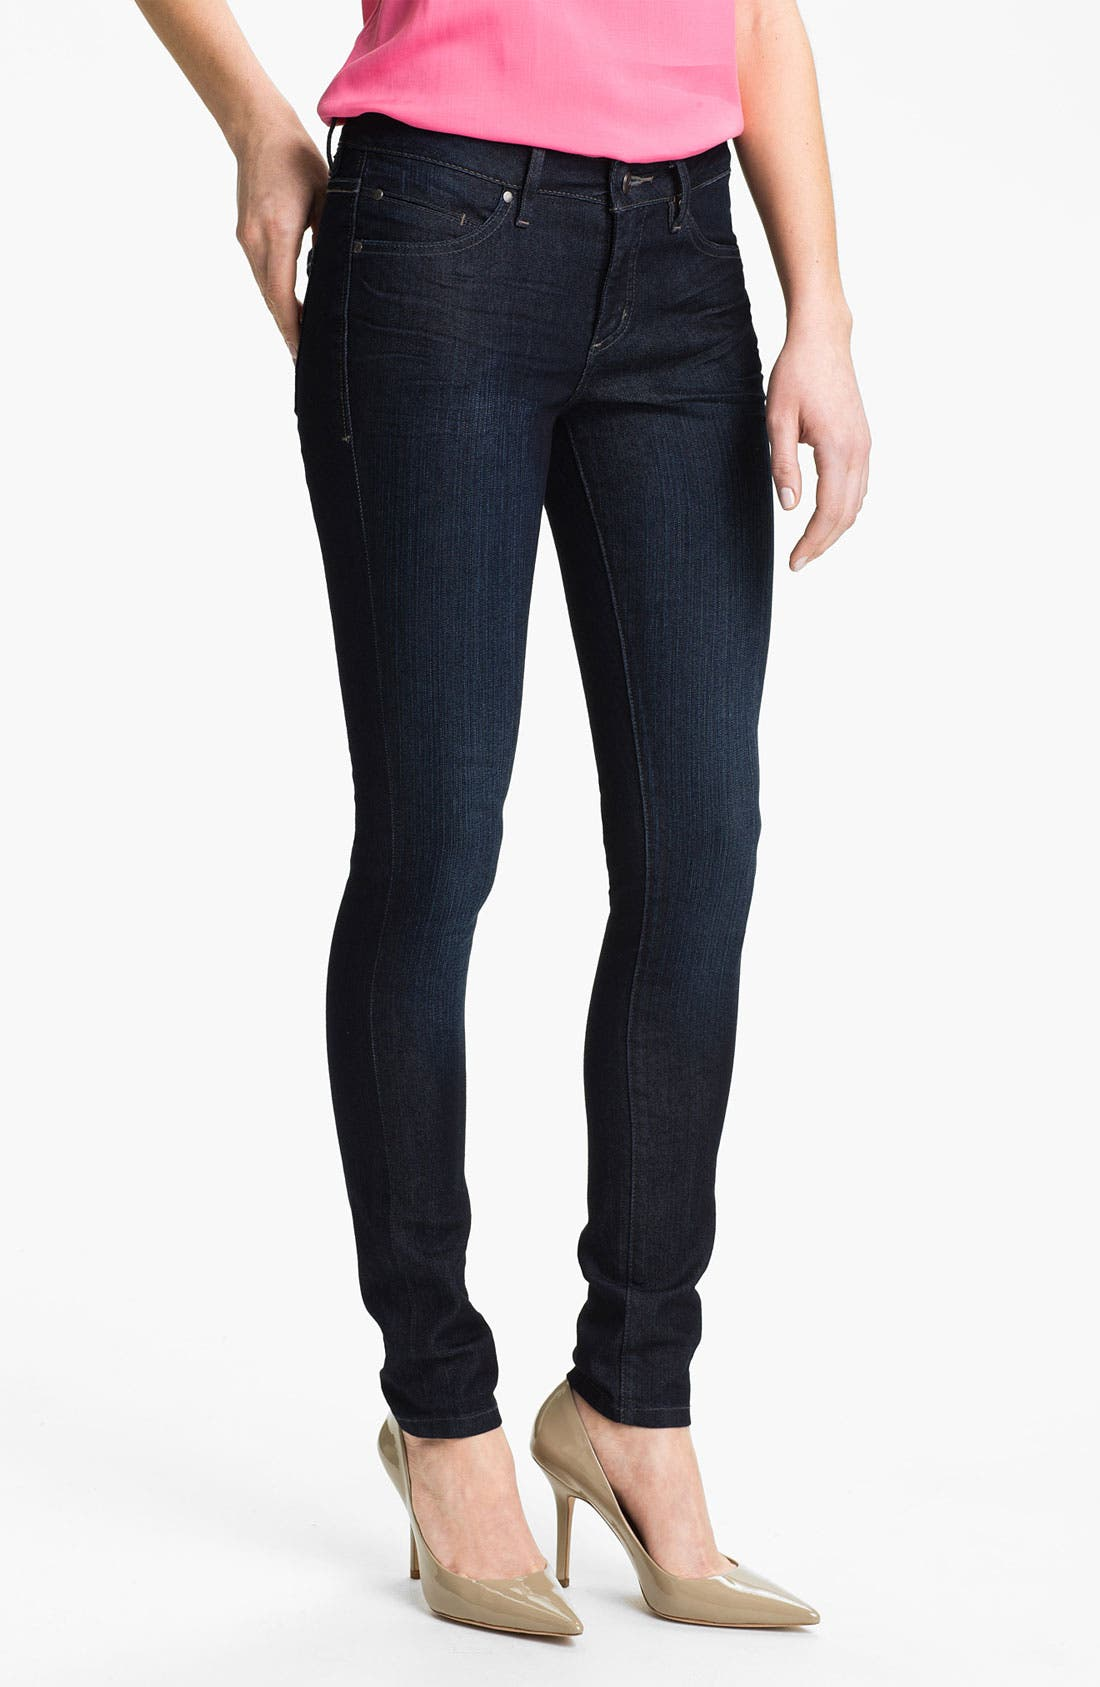 Main Image - Jag Jeans 'Reece' Skinny Jeans (Petite)